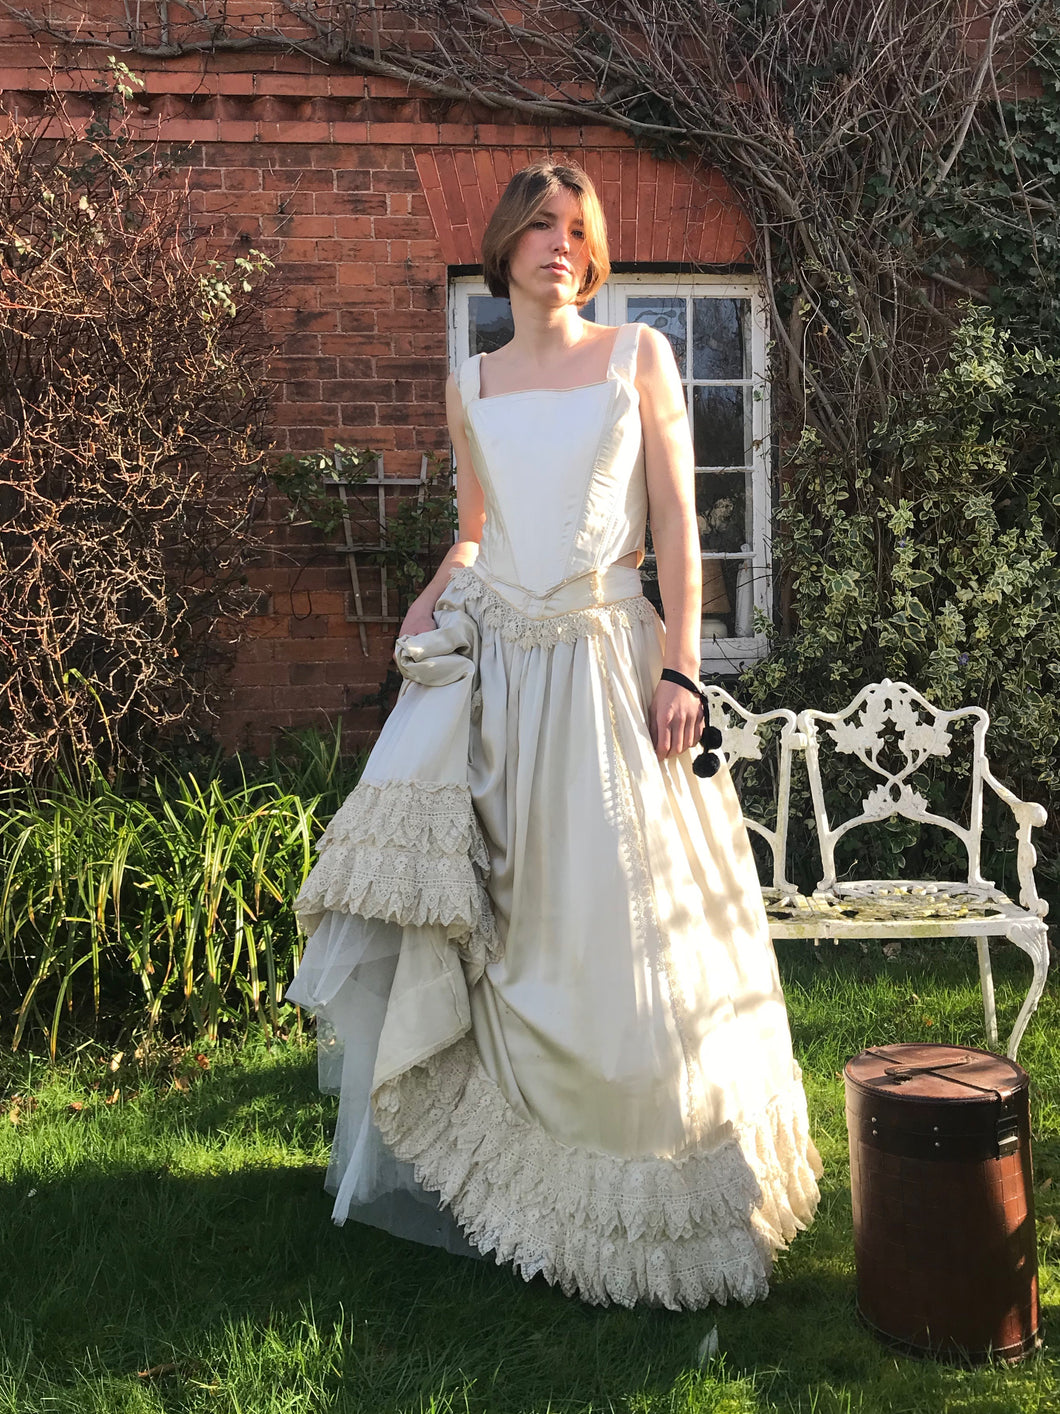 An elegant model stands in front of a red brick cottage, wearing a Victorian vintage ivory silk corset and skirt. She holds a gathered handful of the lace adorned skirt, showing it's fullness. A hat box sits on the grass beside her, and her expression is wistful. Worn together, the corset and skirt appear as one gown, perfect for a wedding dress.